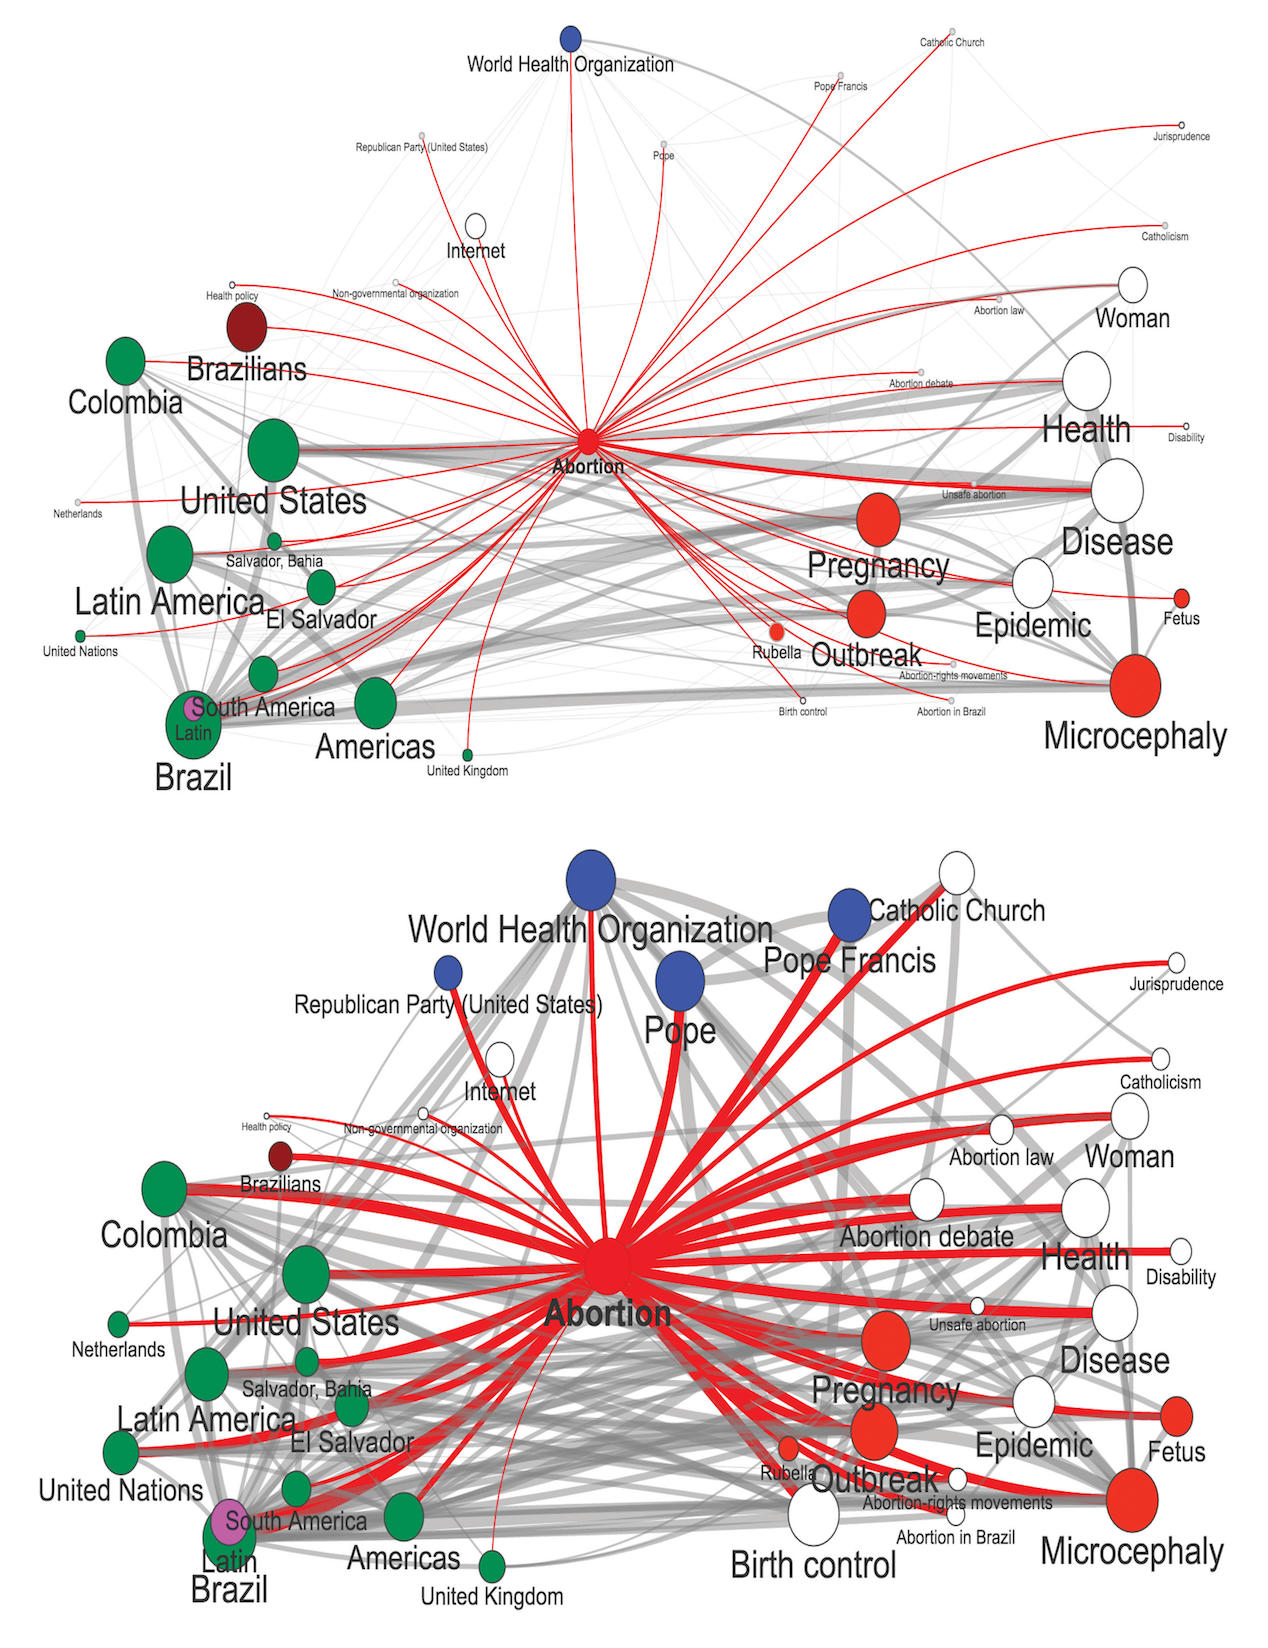 JPH-Zika in Twitter: Temporal Variations of Locations, Actors, and ...